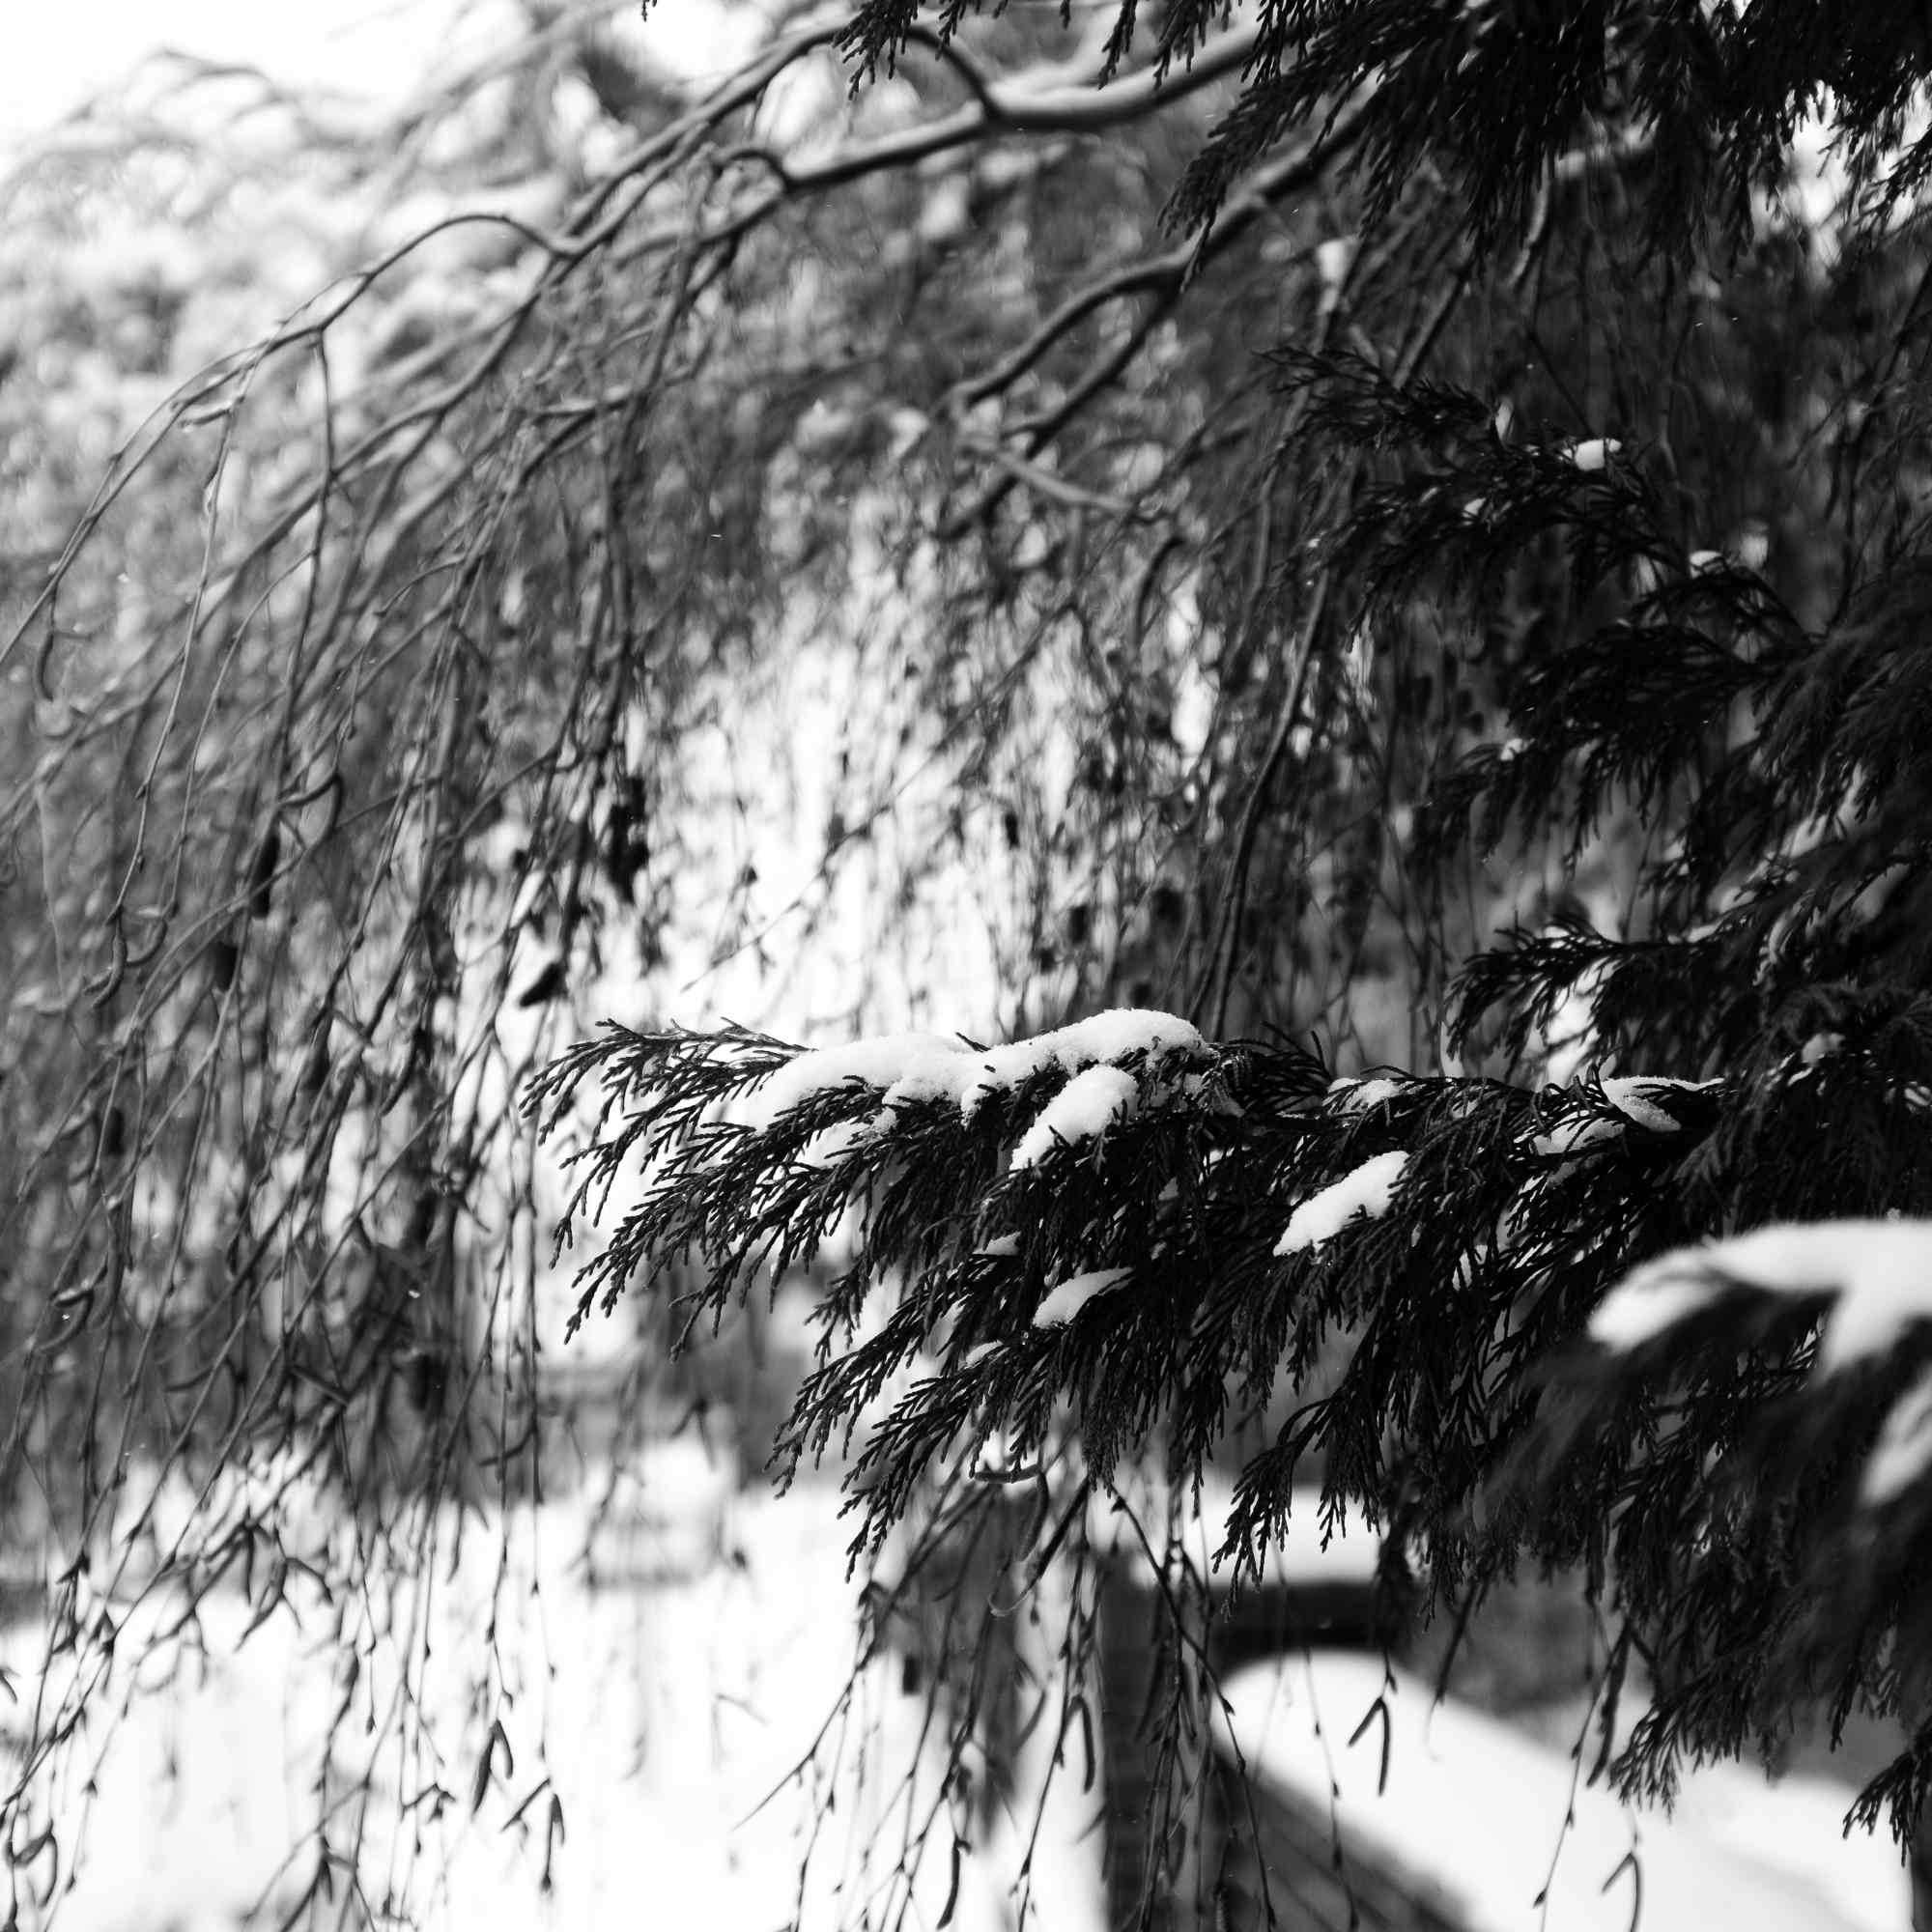 Tree branch covered in snow